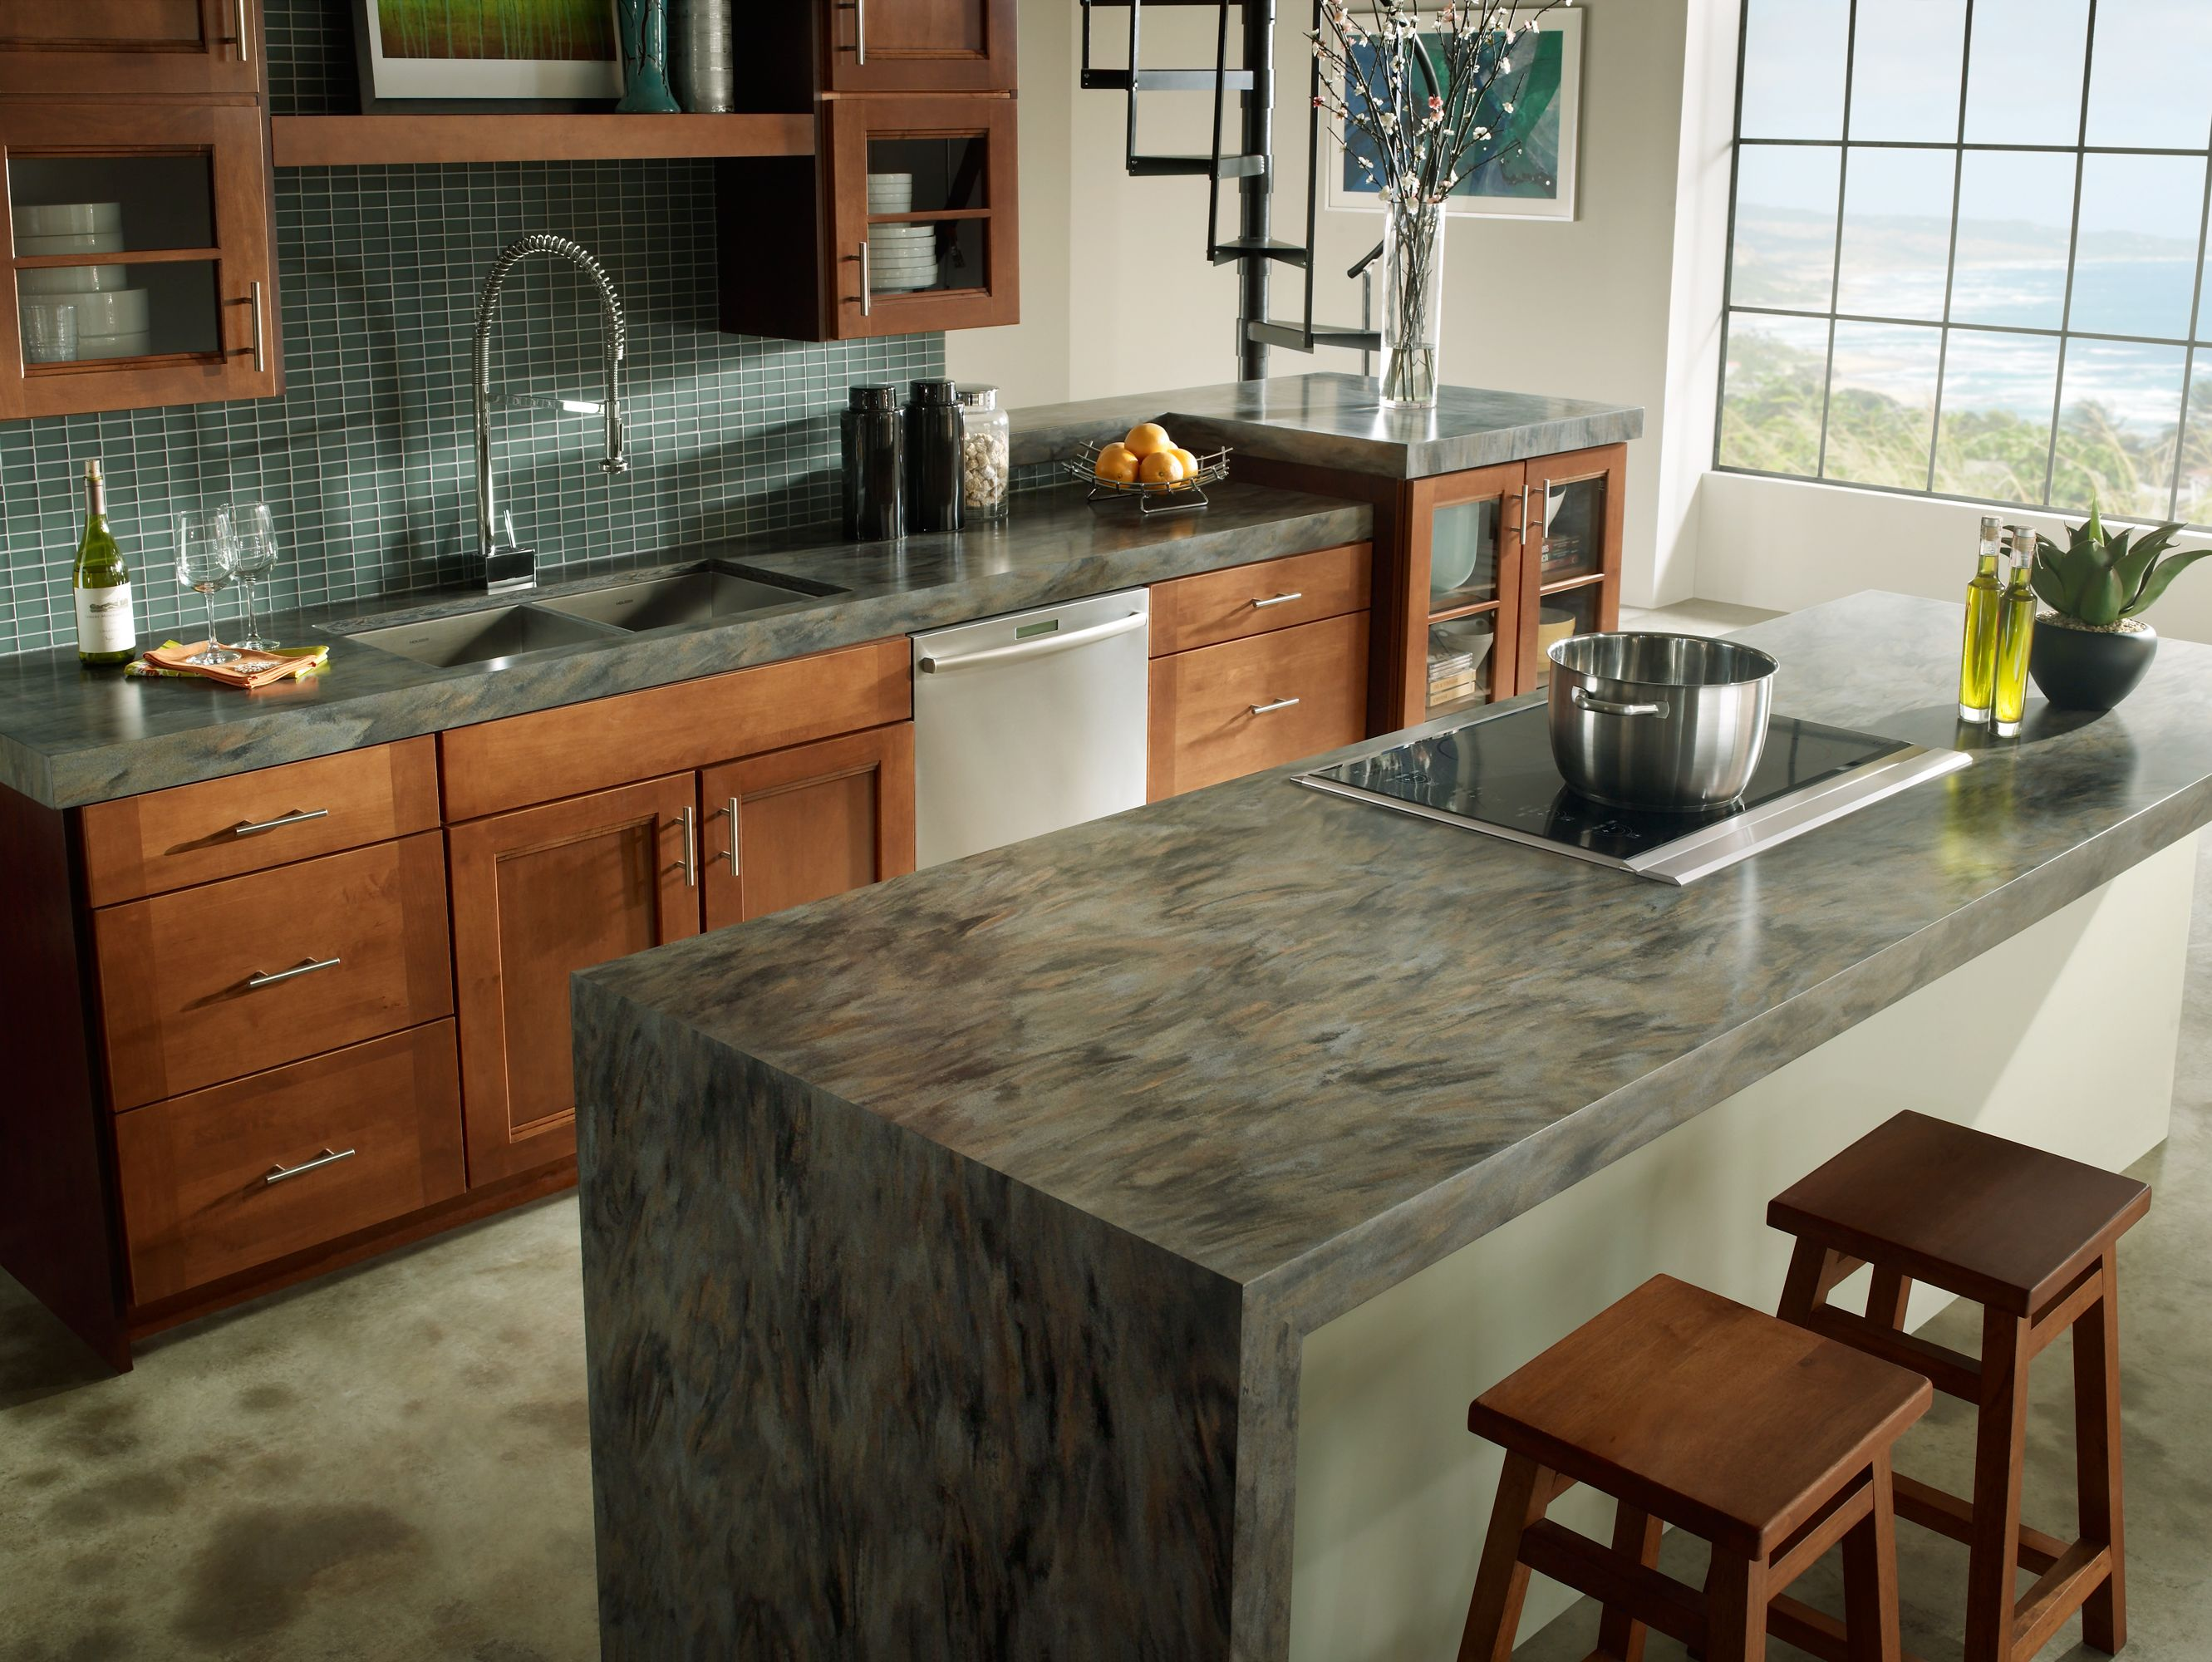 kitchen countertops kitchen countertops options Kitchen Attractive Gray Mosaic Kitchen Island Marble Countertop Along With Nice Kitchen Cabinet Decoration Best Choice For Kitchen Countertops Design Ideas